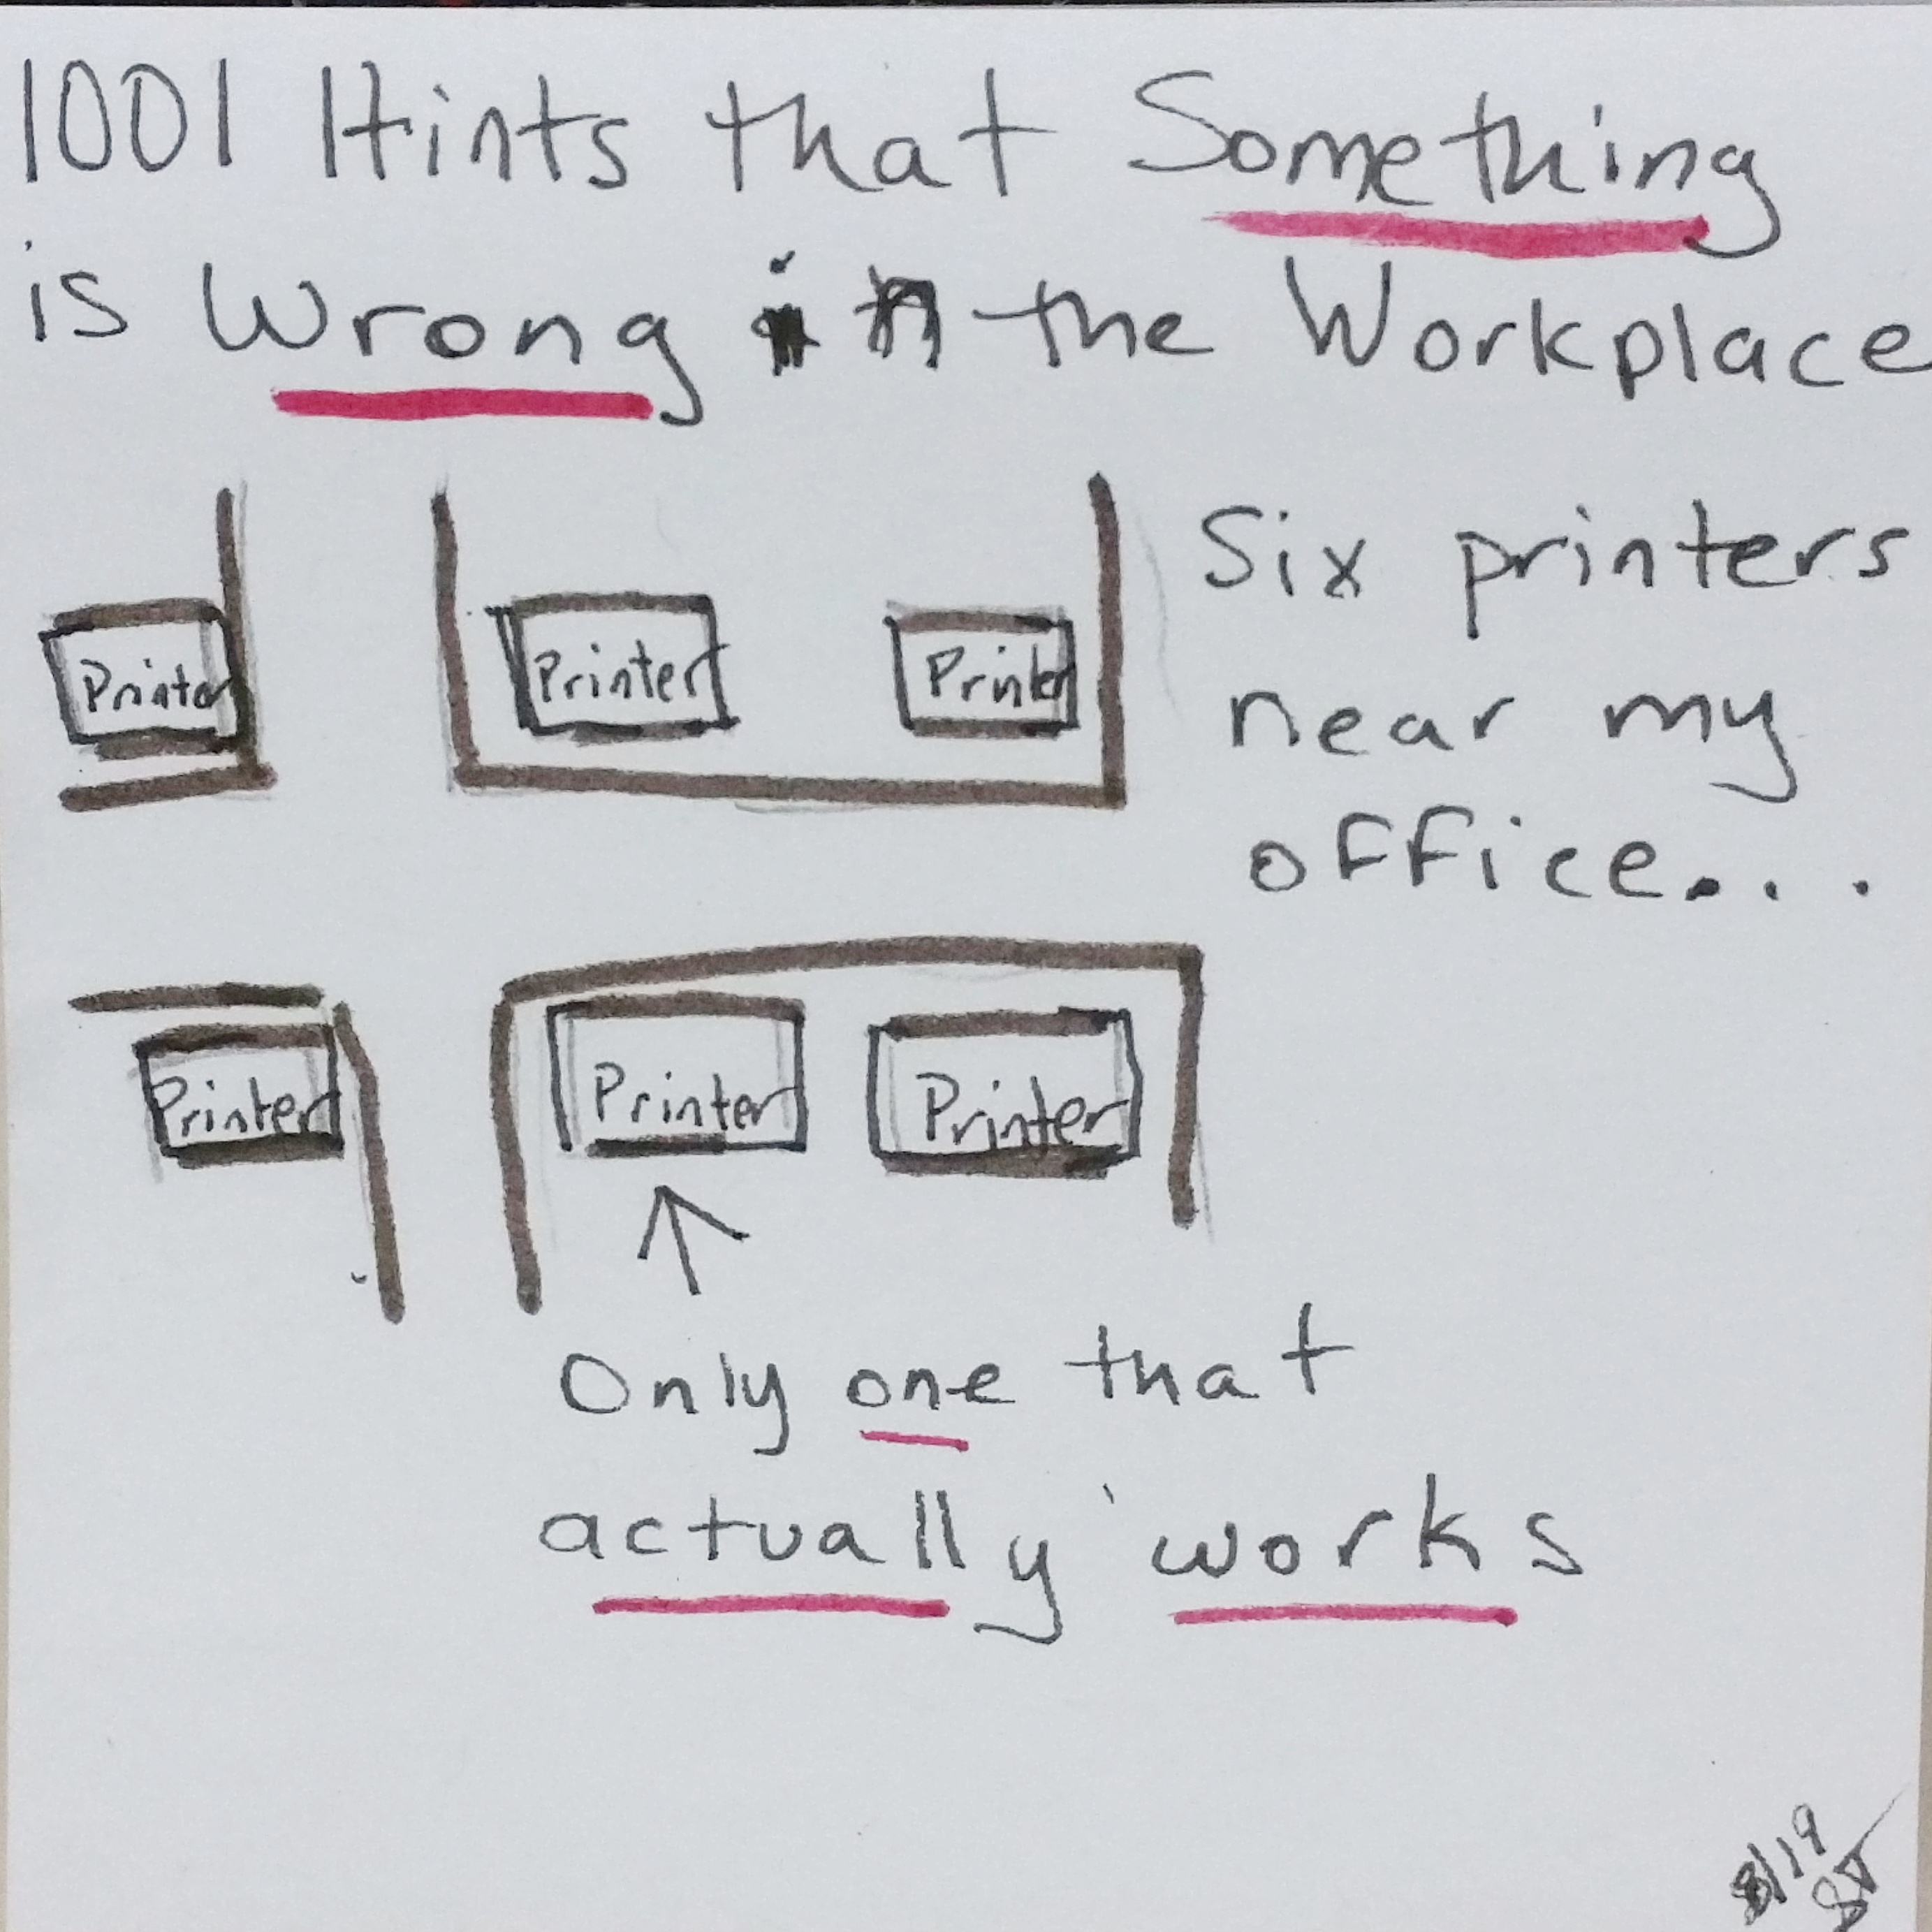 1001 Hints that Something is Wrong in the Workplace-1